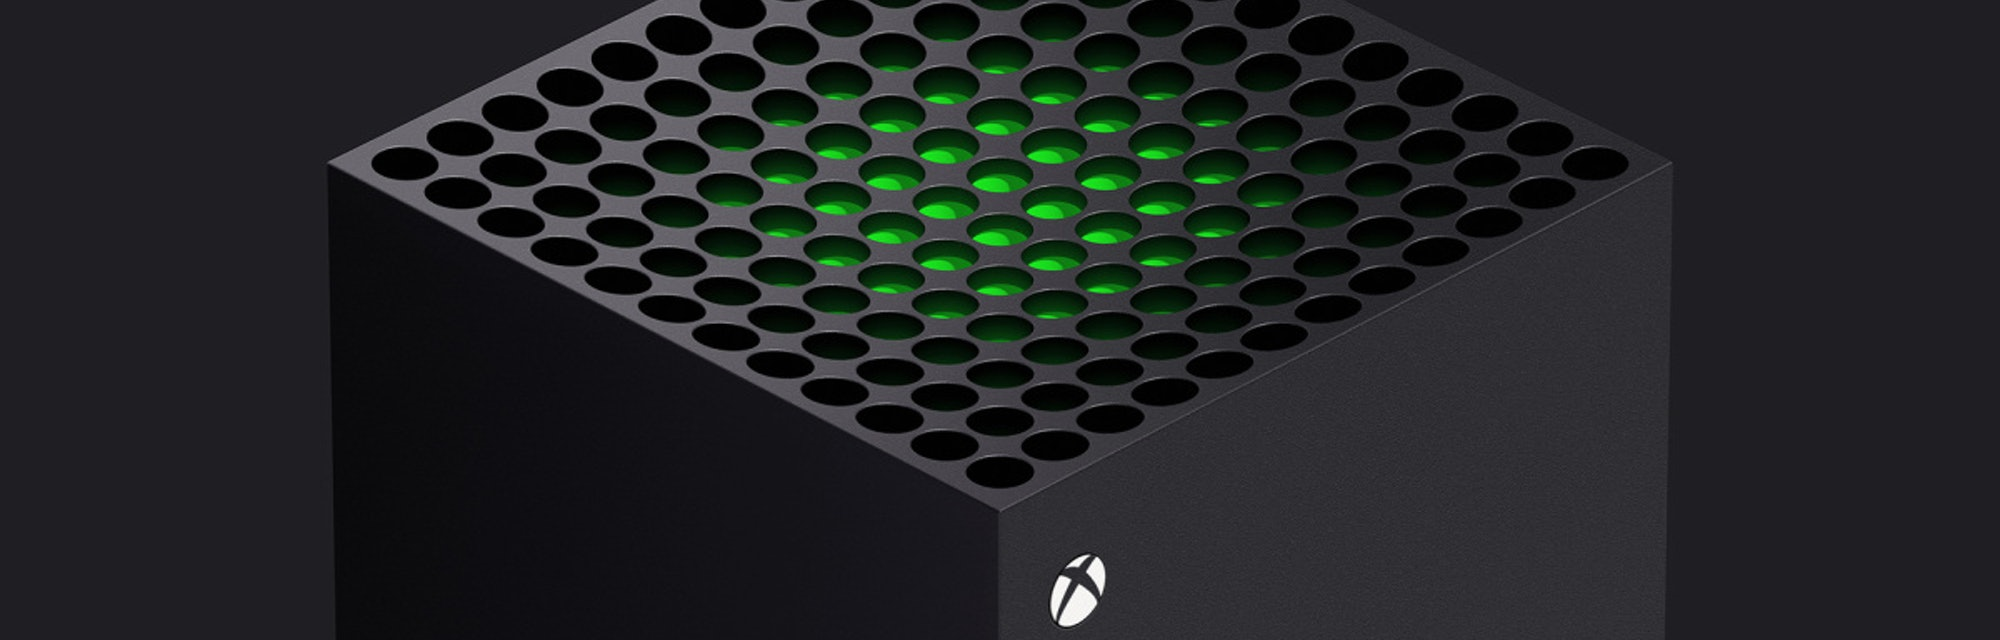 Close-up of the top of the Xbox Series X